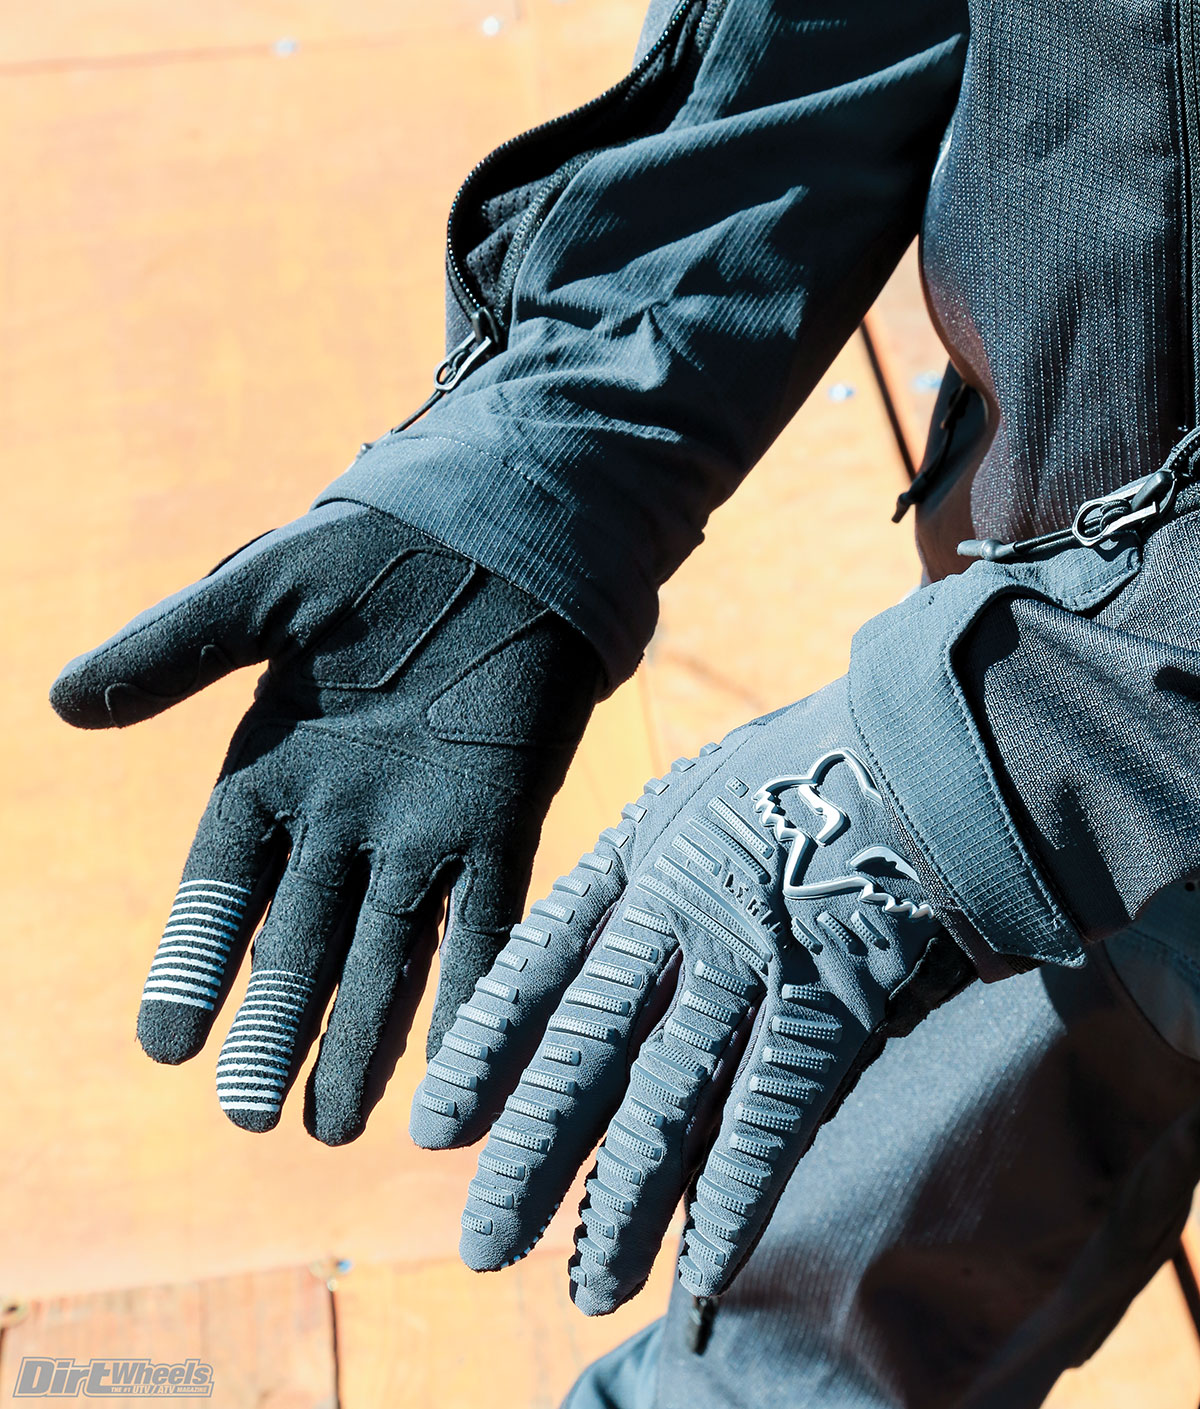 The fingertips of the Legion gloves are touchscreen-friendly, so you can answer calls or text without removing them.